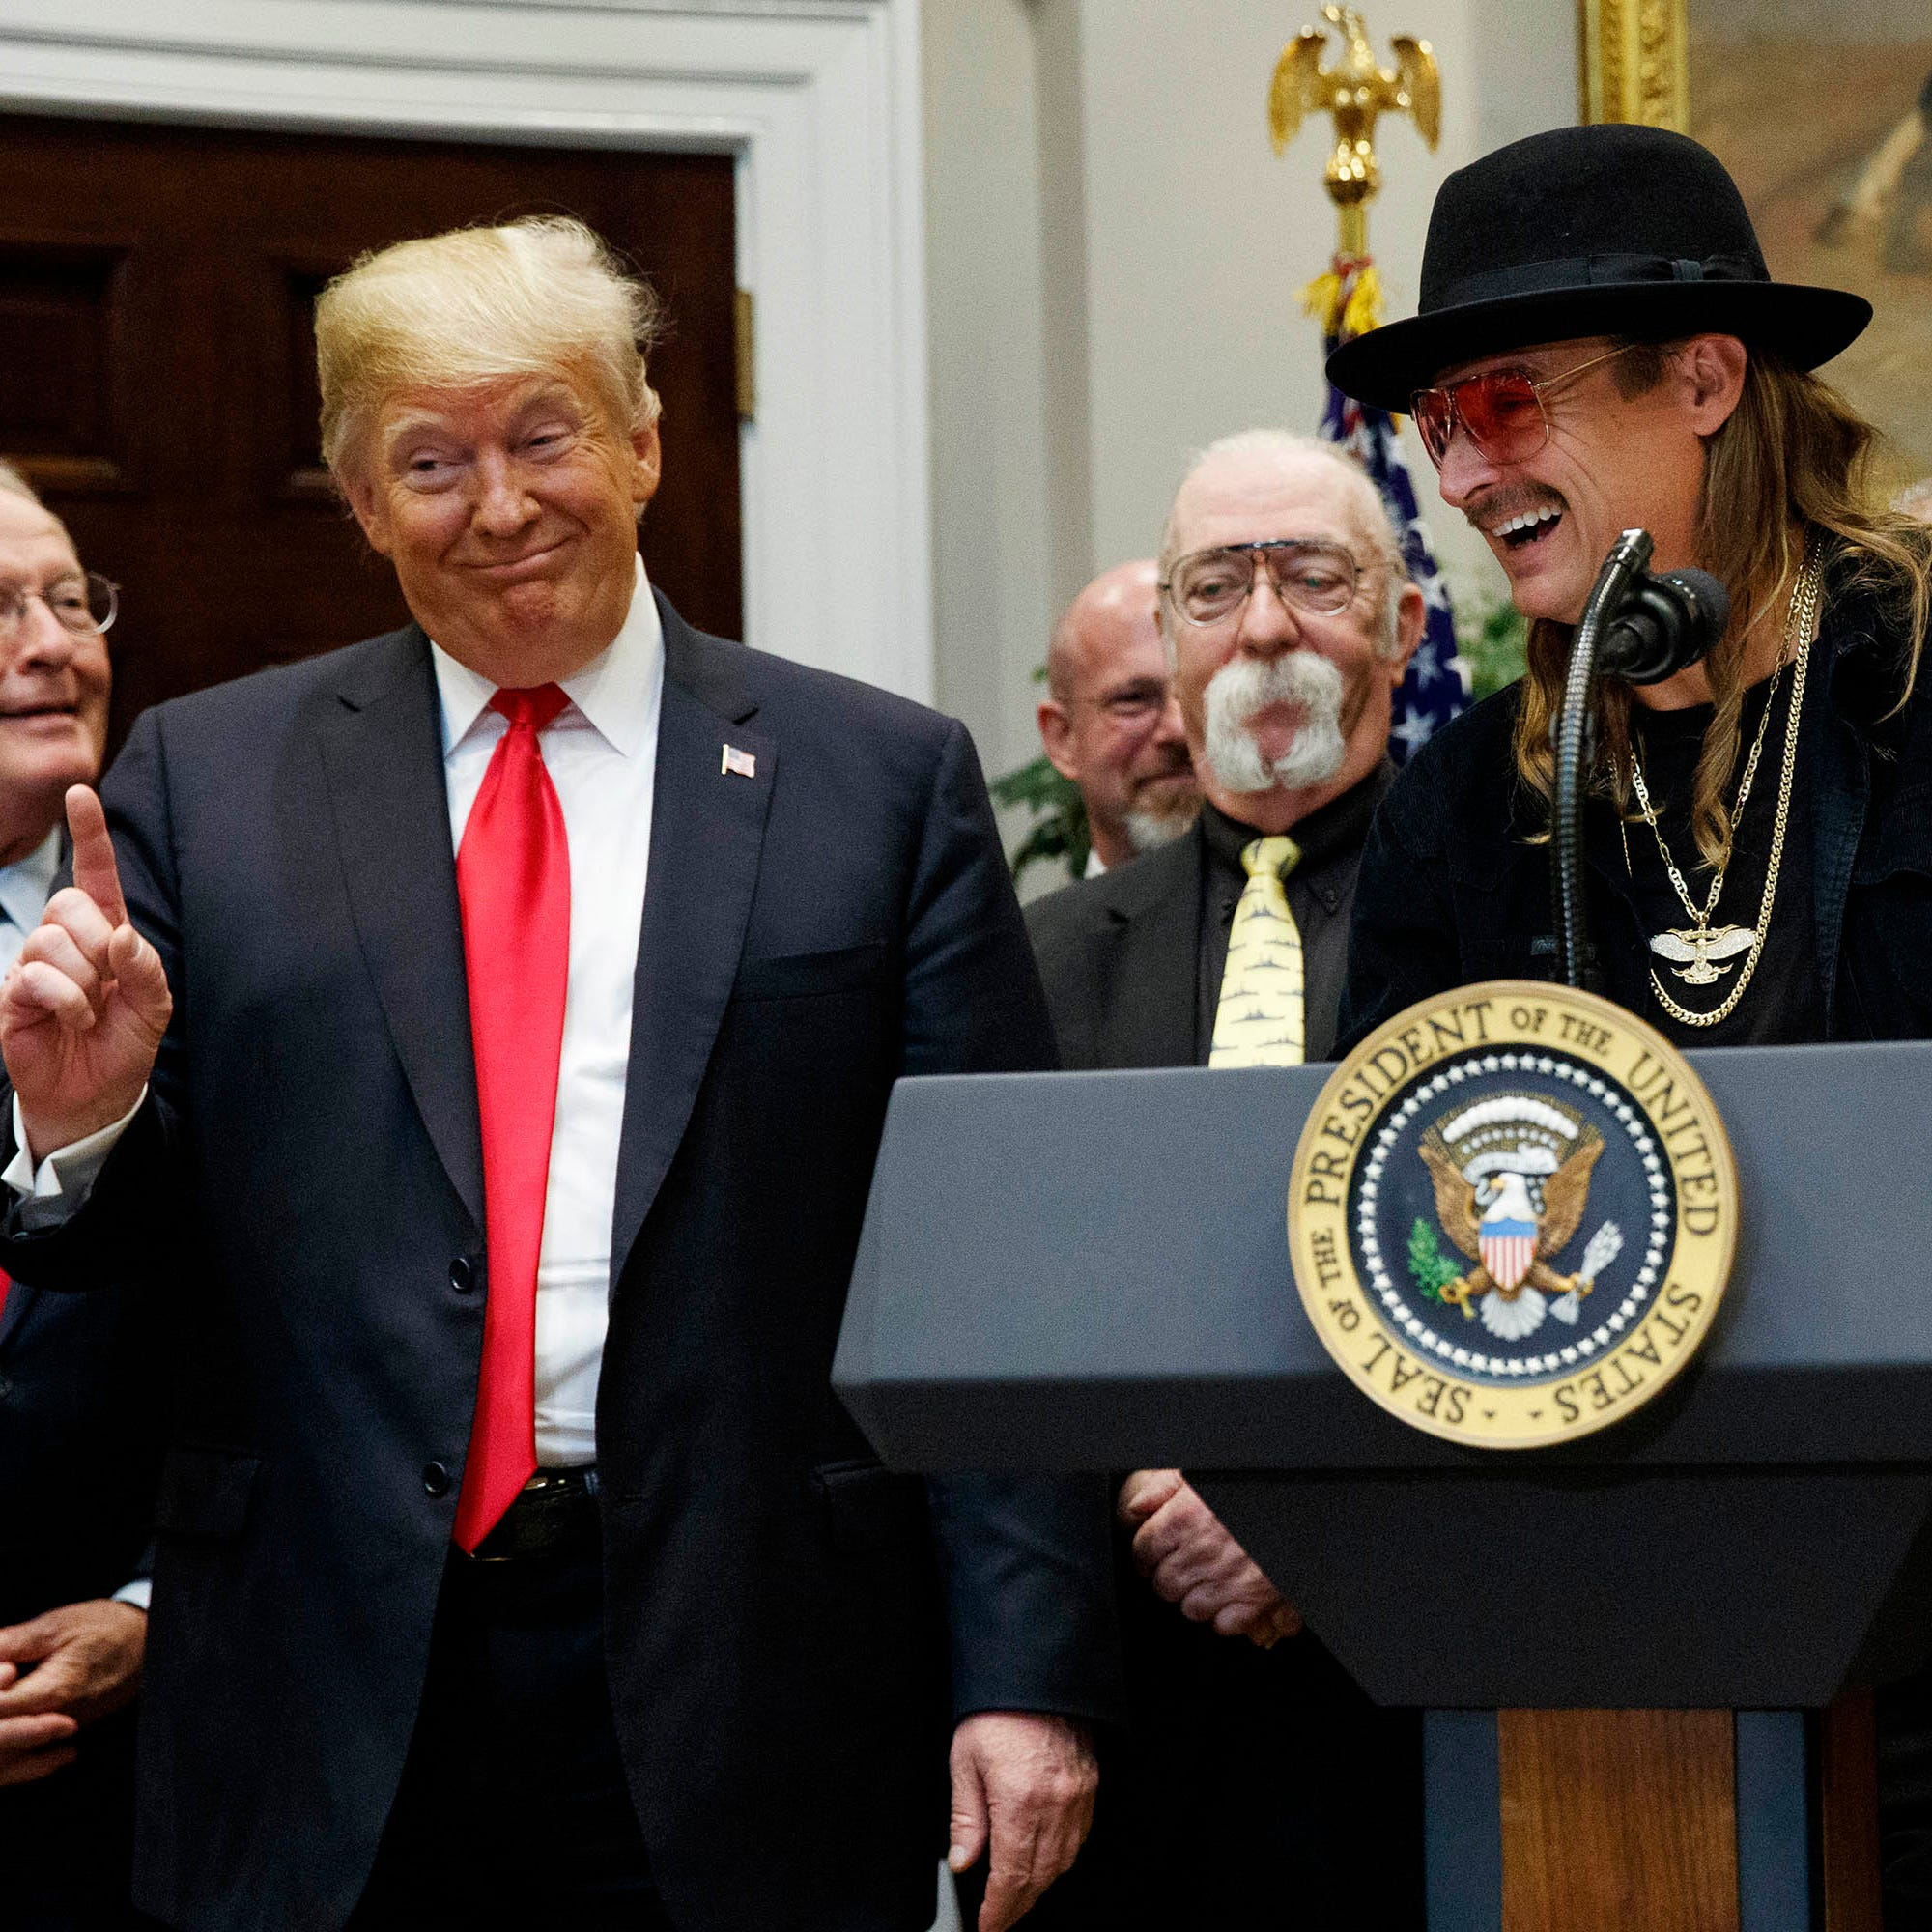 Kid Rock spotted at the White House again: Here's what we know